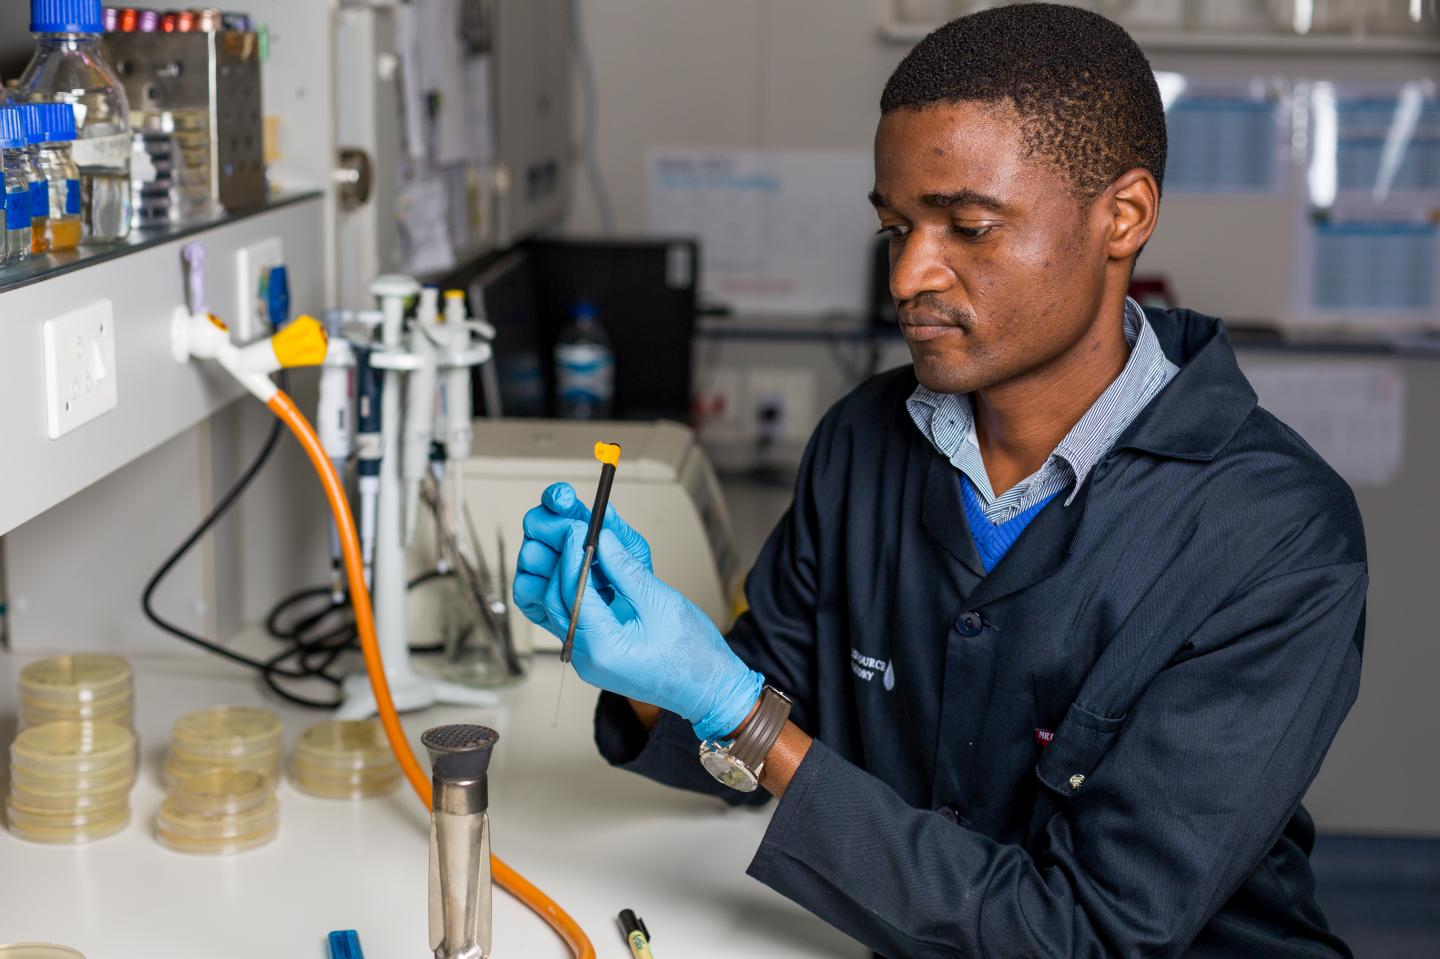 This is South African microbiologist, Dr Thando Ndlovu in his laboratory in the Department Microbiology, Stellenbosch University. / Credit: Stefan Els